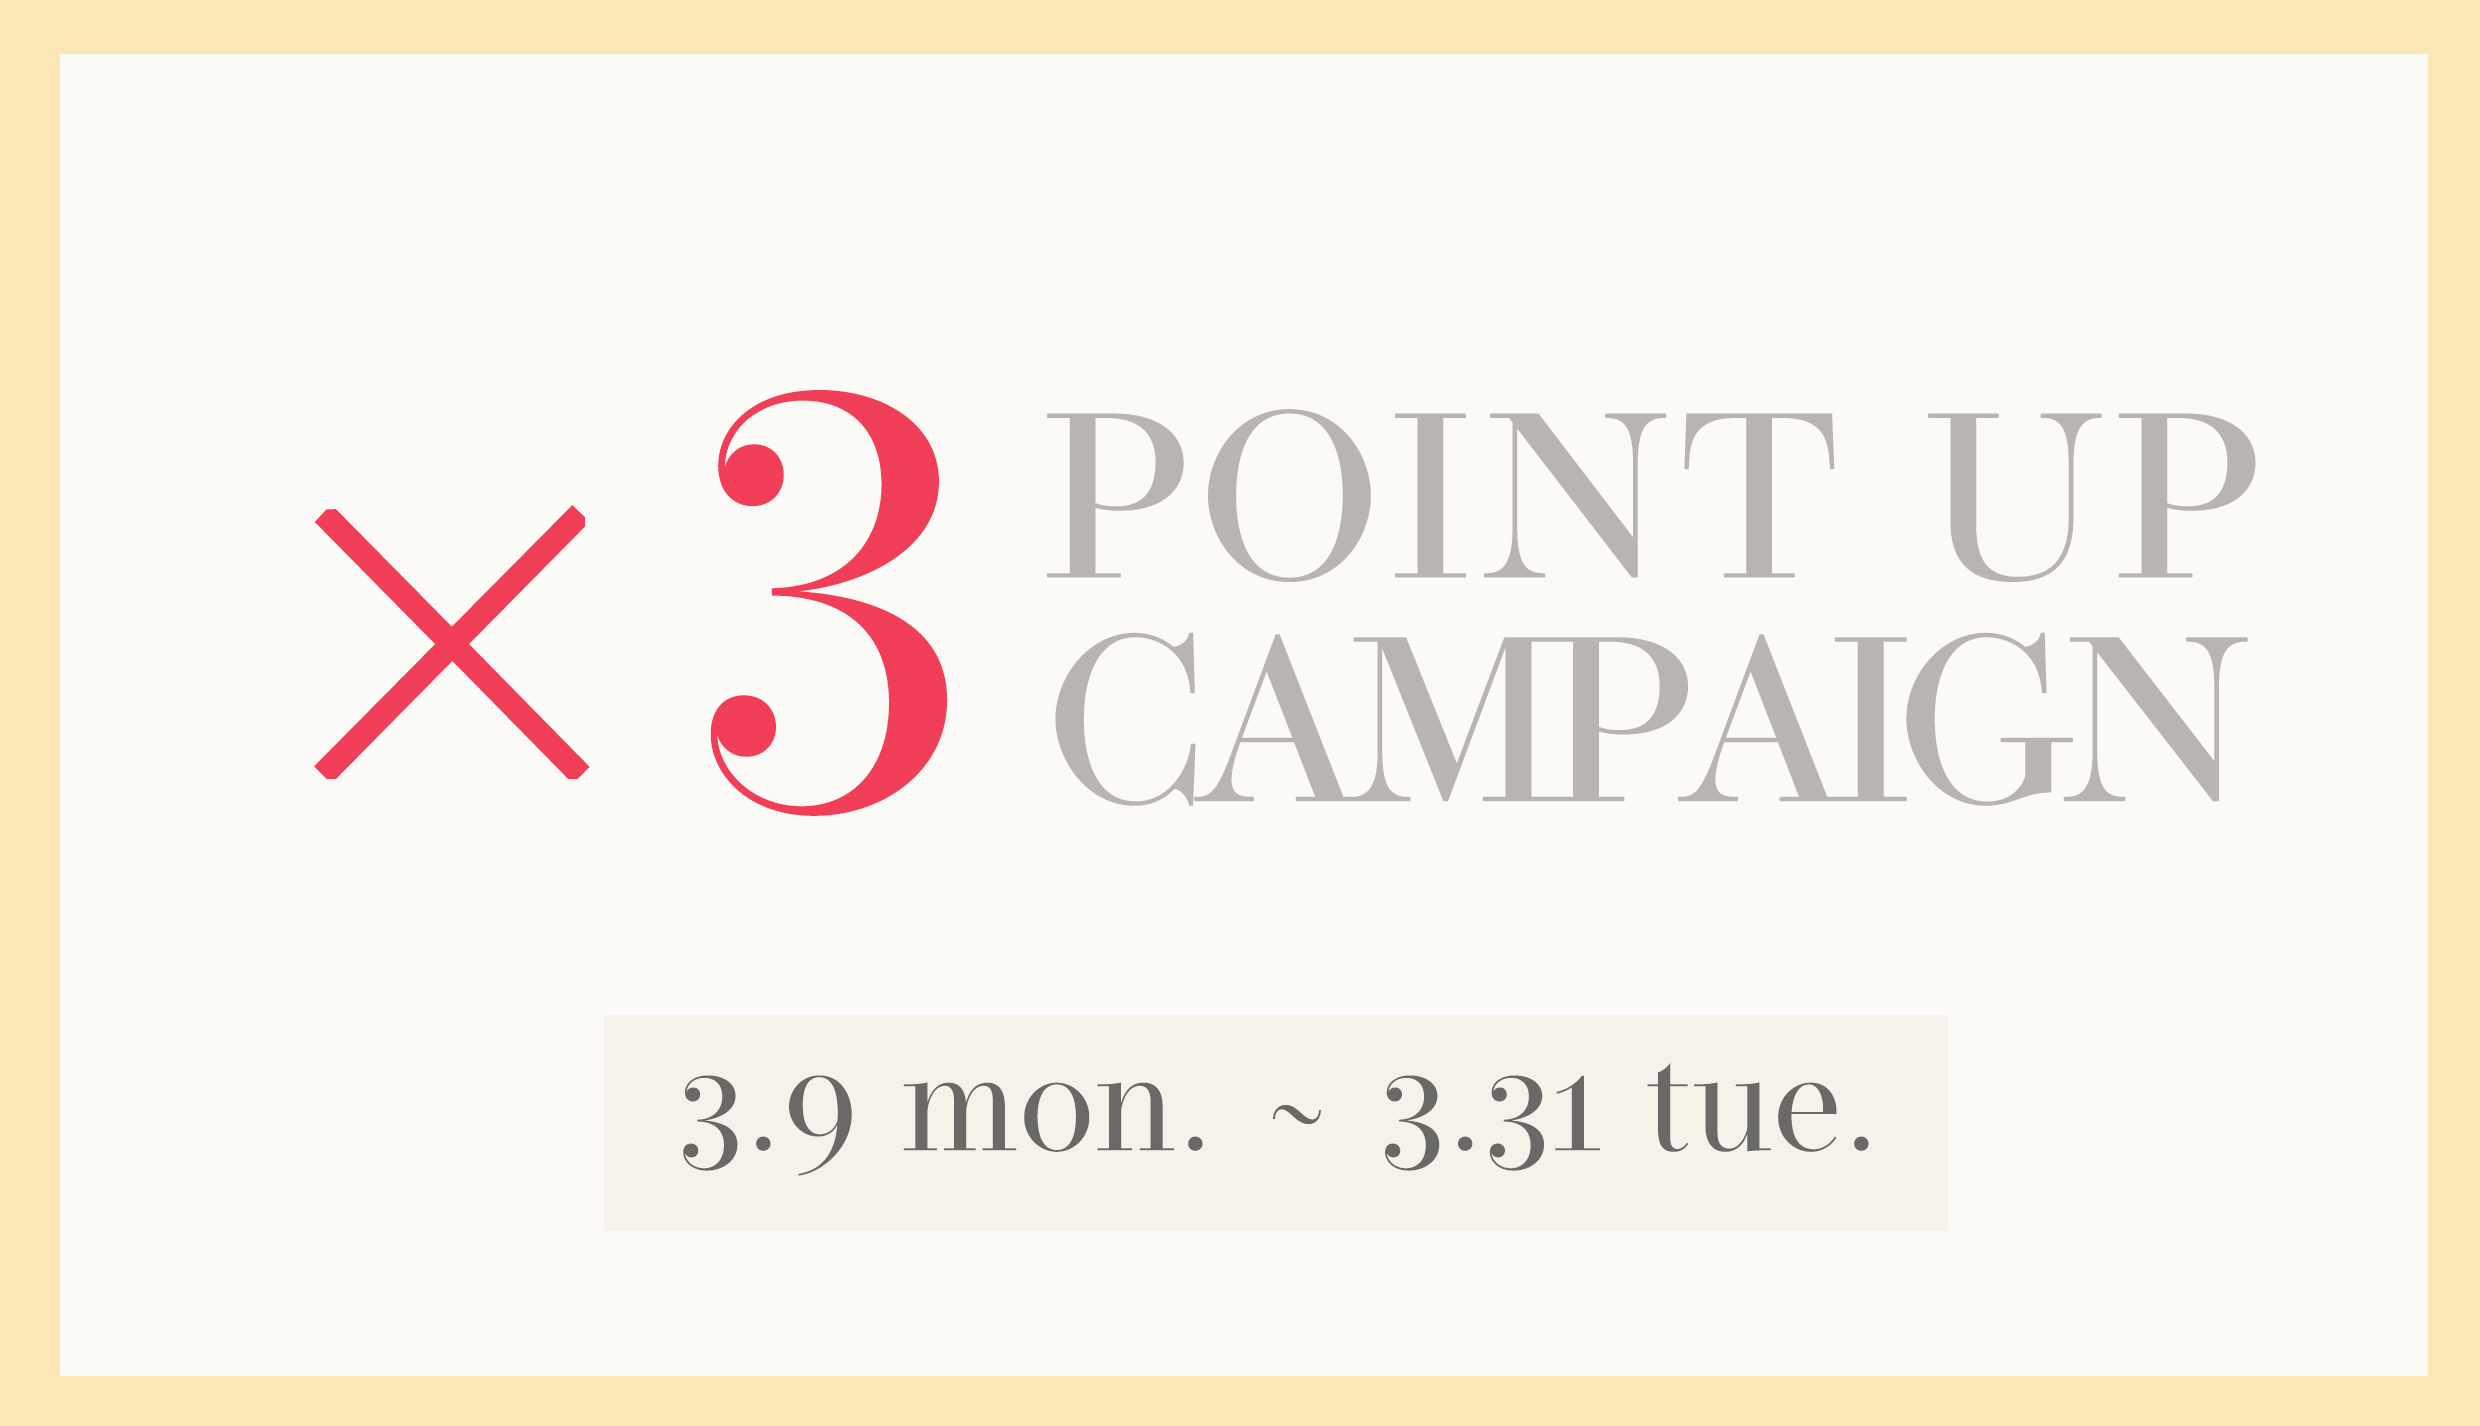 ×3 POINT UP CAMPAIGN